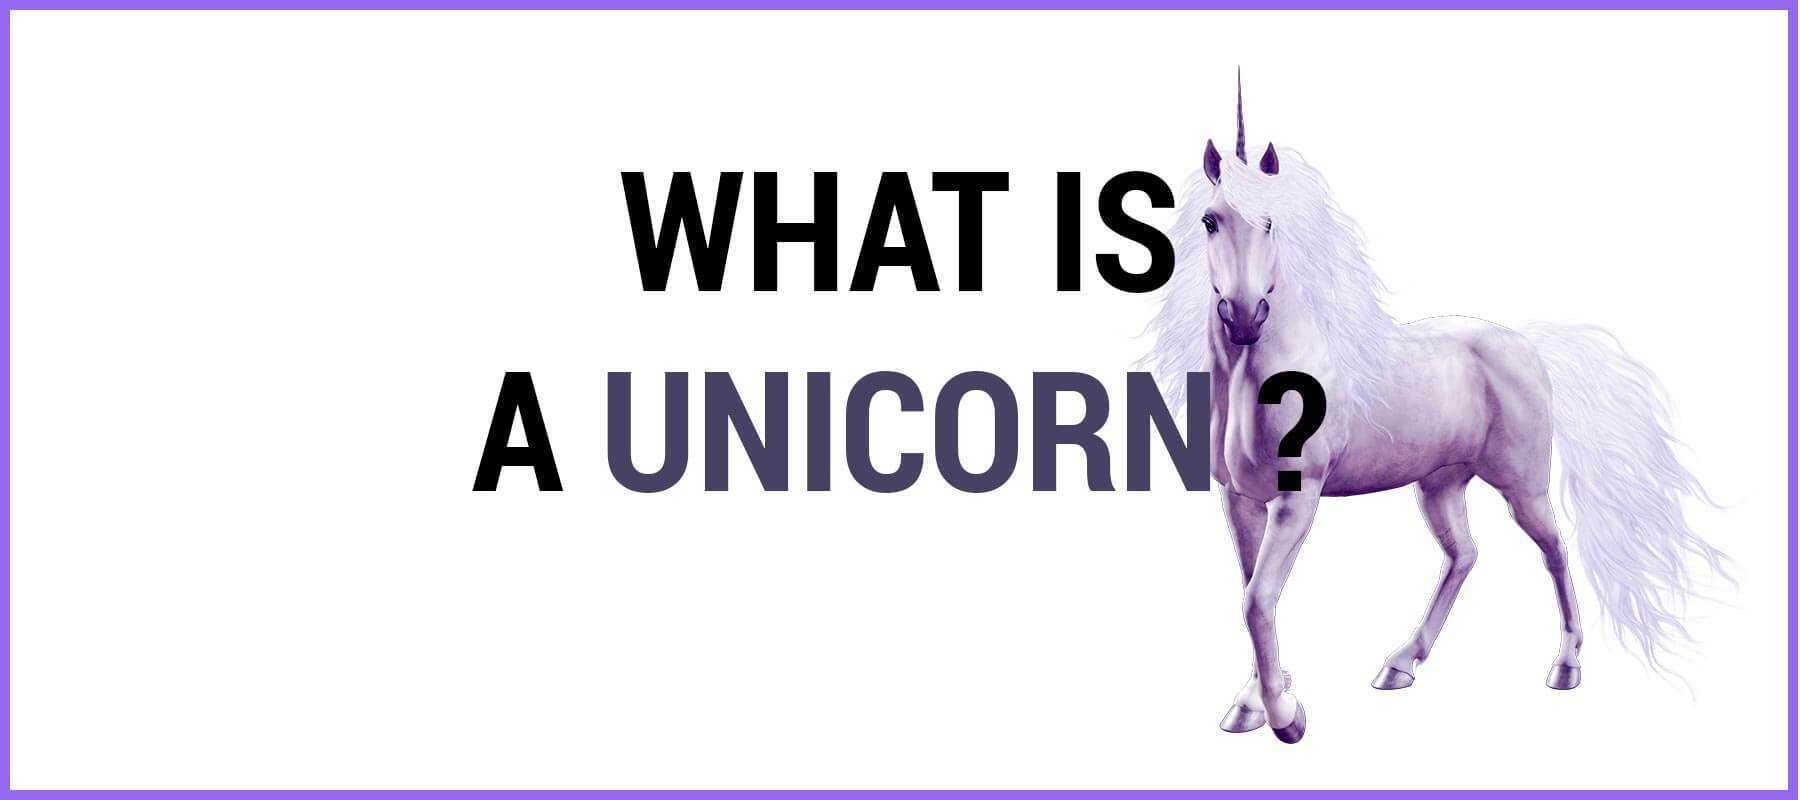 what is unicorn definition